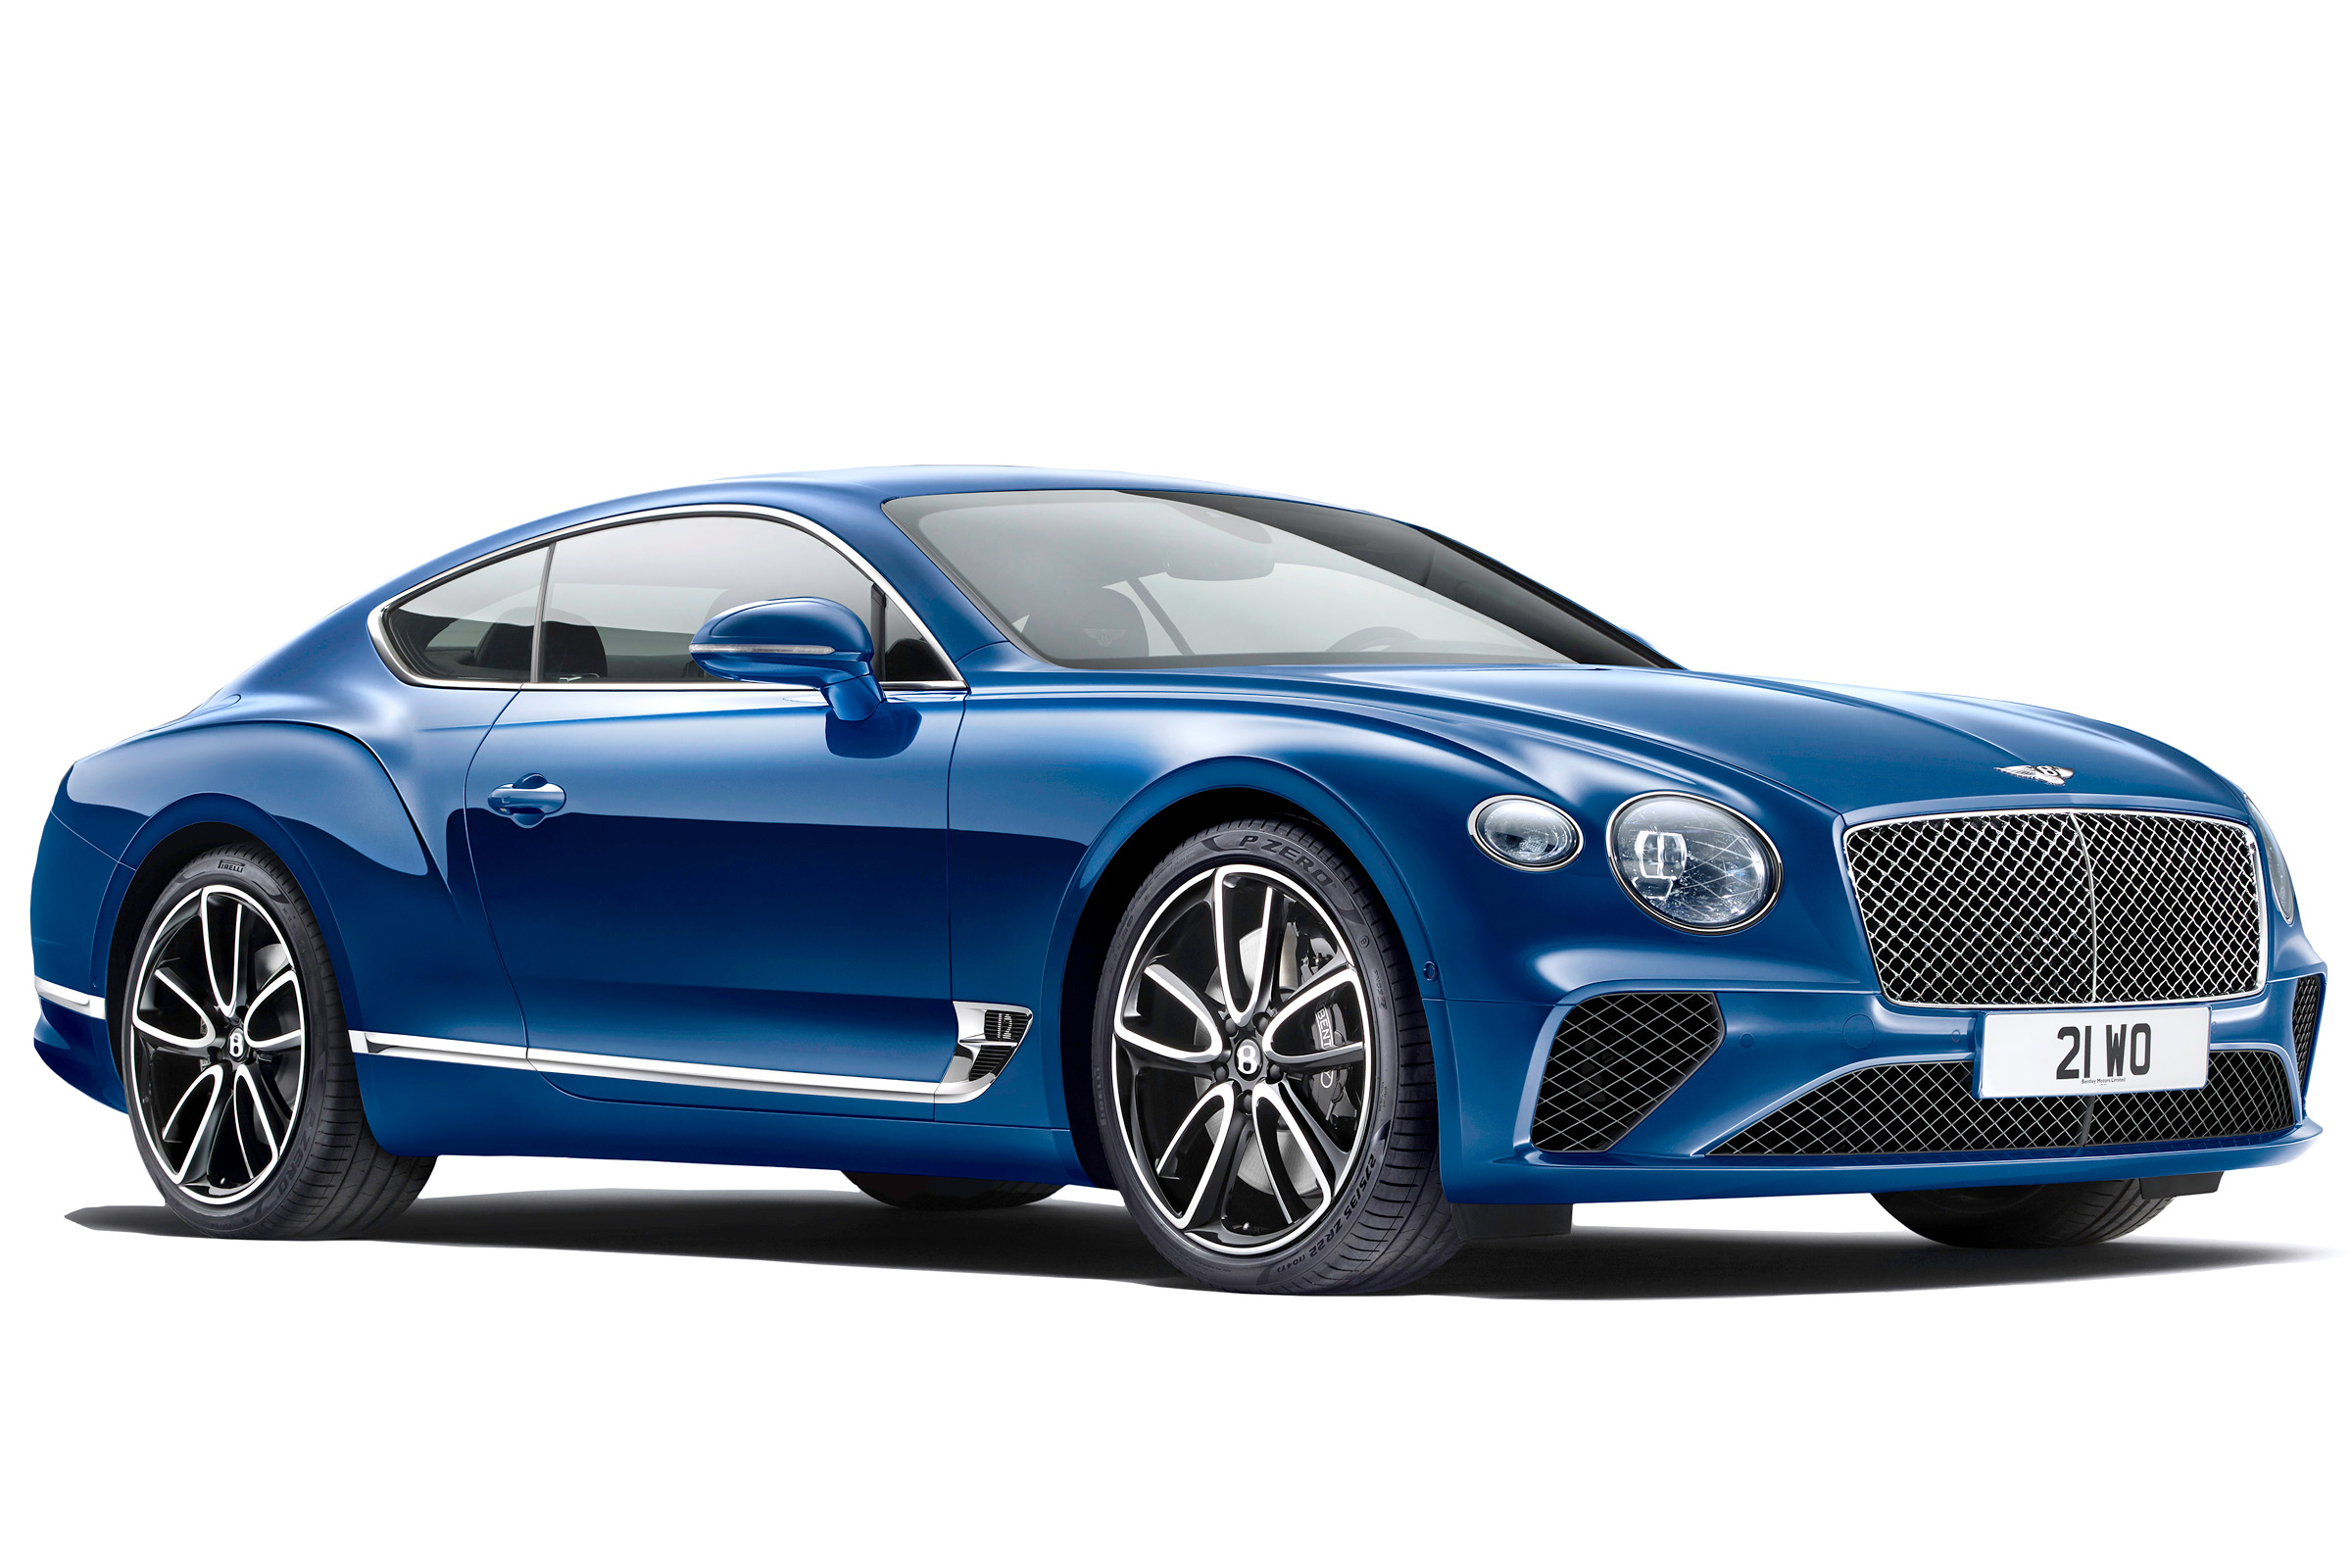 Bentley Continental Gt Coupe Mpg Running Costs Co2 2020 Review Carbuyer